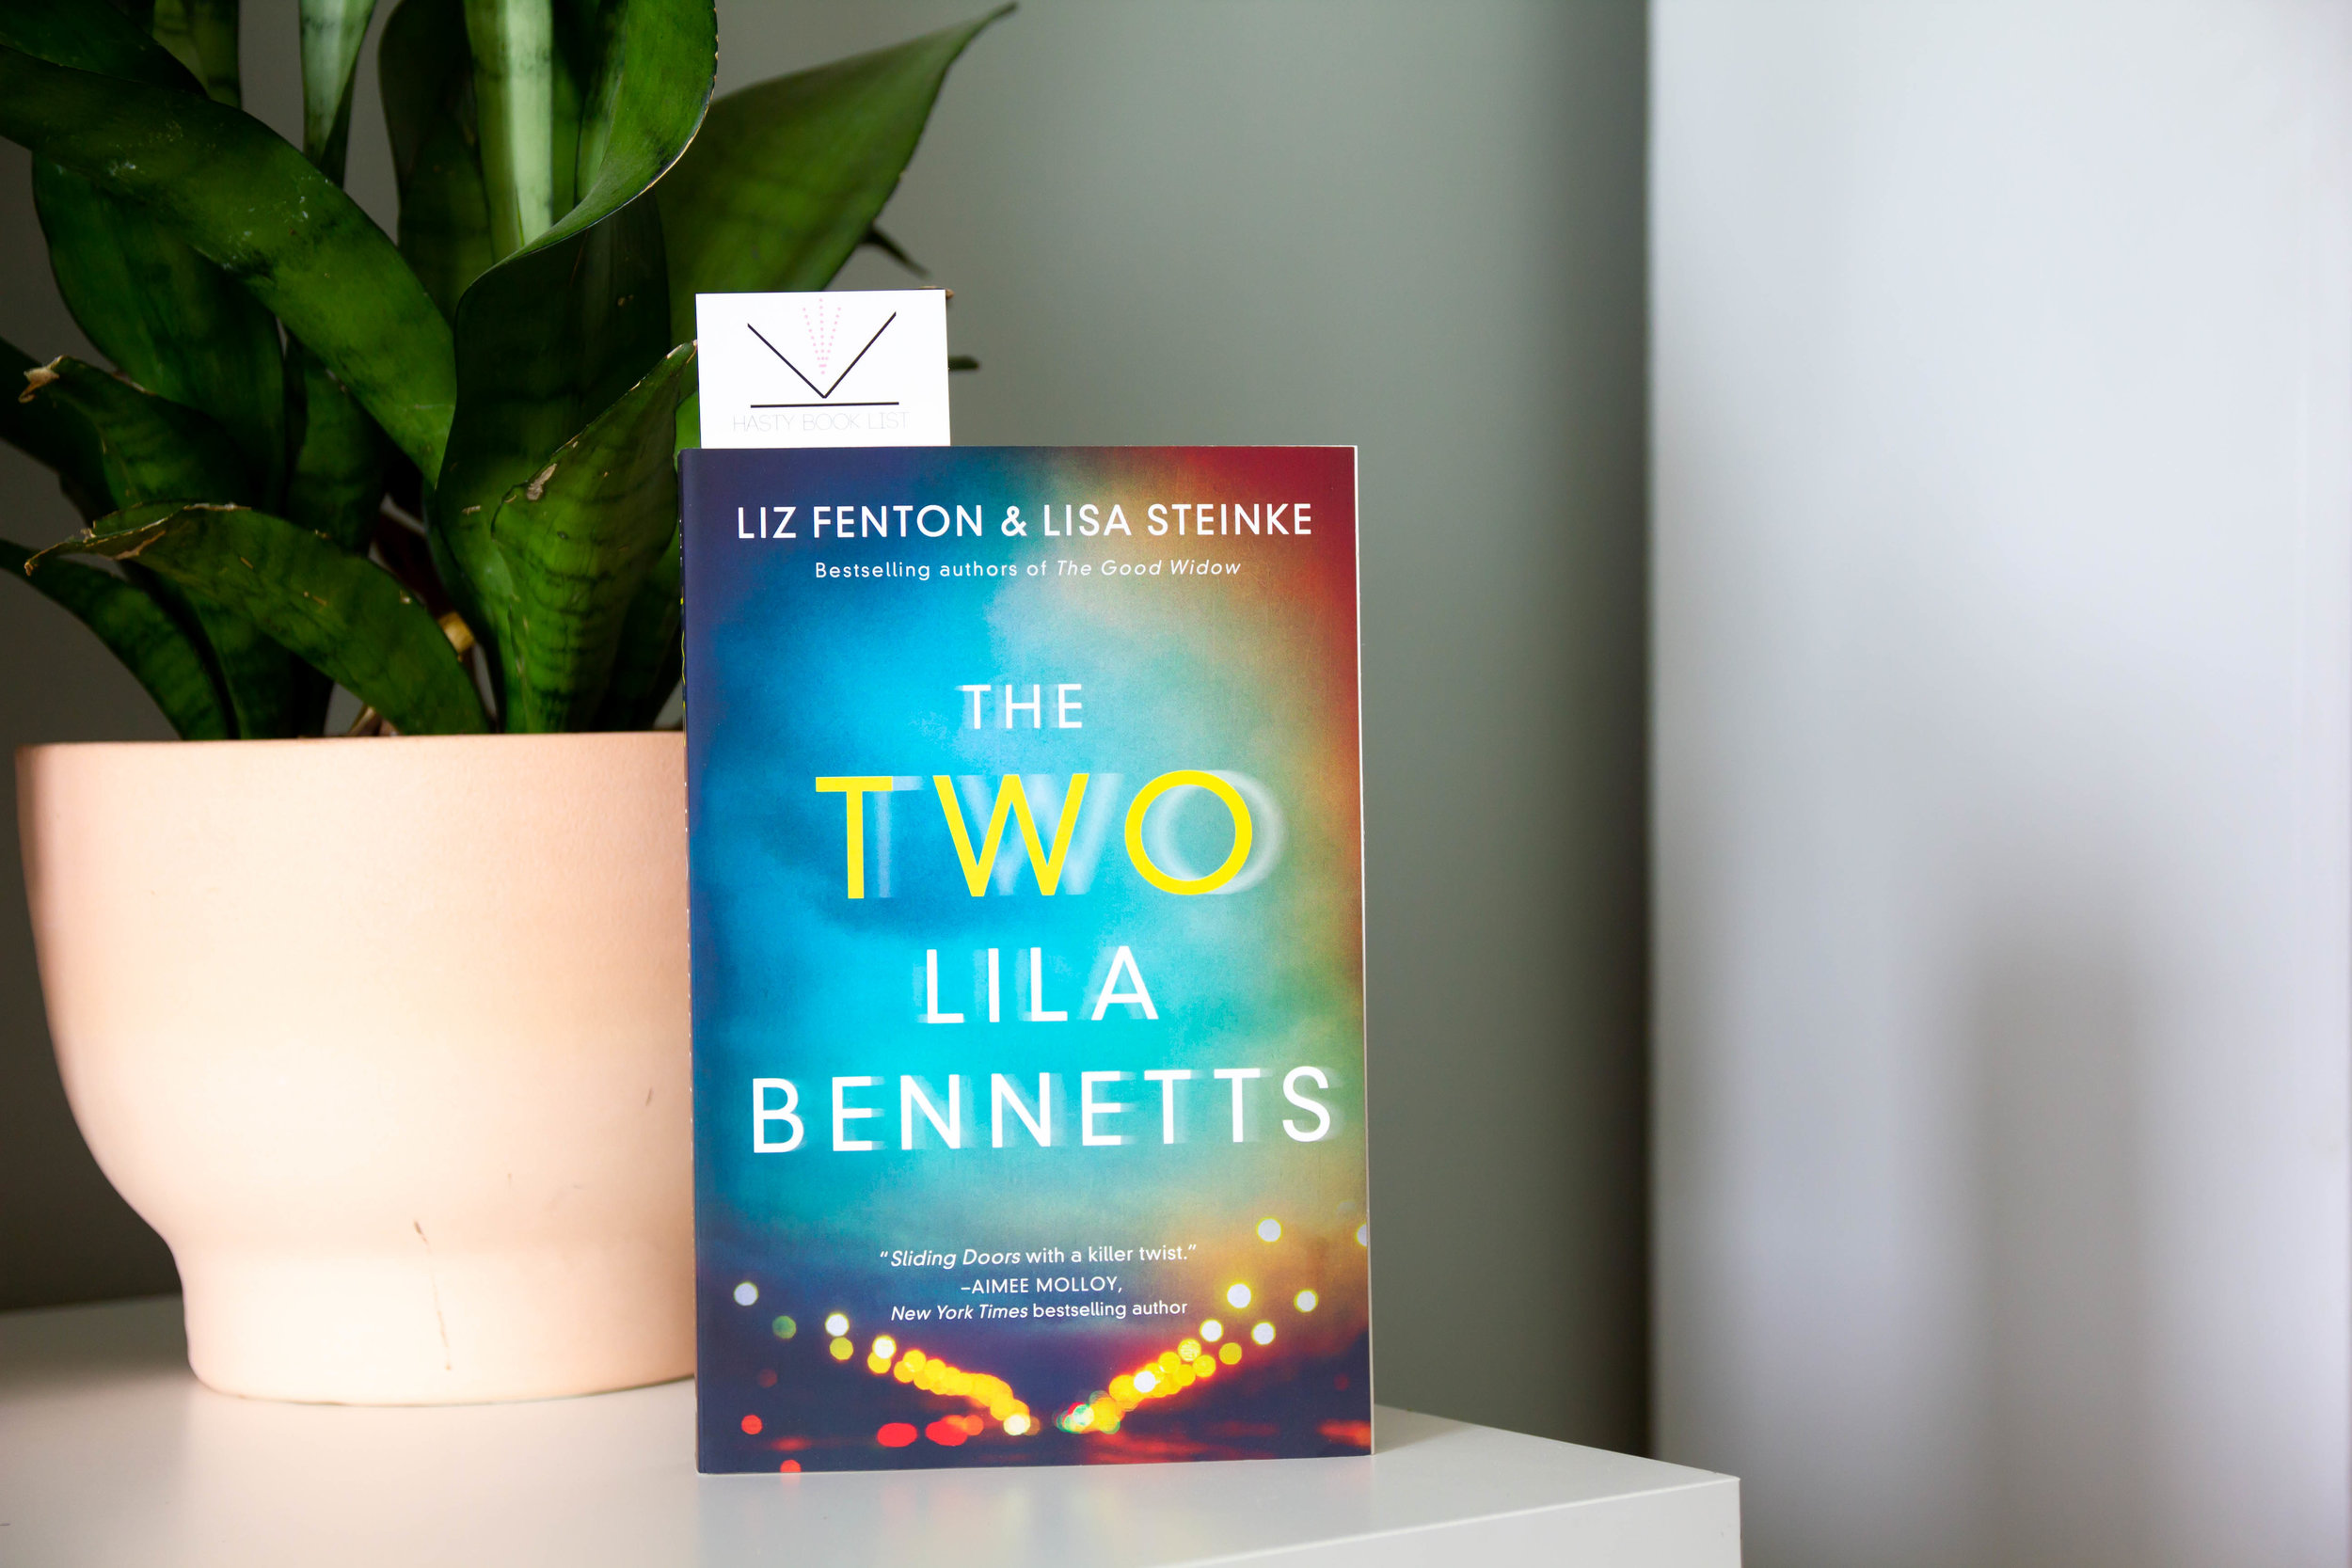 The Two Lila Bennetts by Liz Fenton and Lisa Steinke - Lila Bennett's bad choices have finally caught up with her. And one of those decisions has split her life in two. Literally.